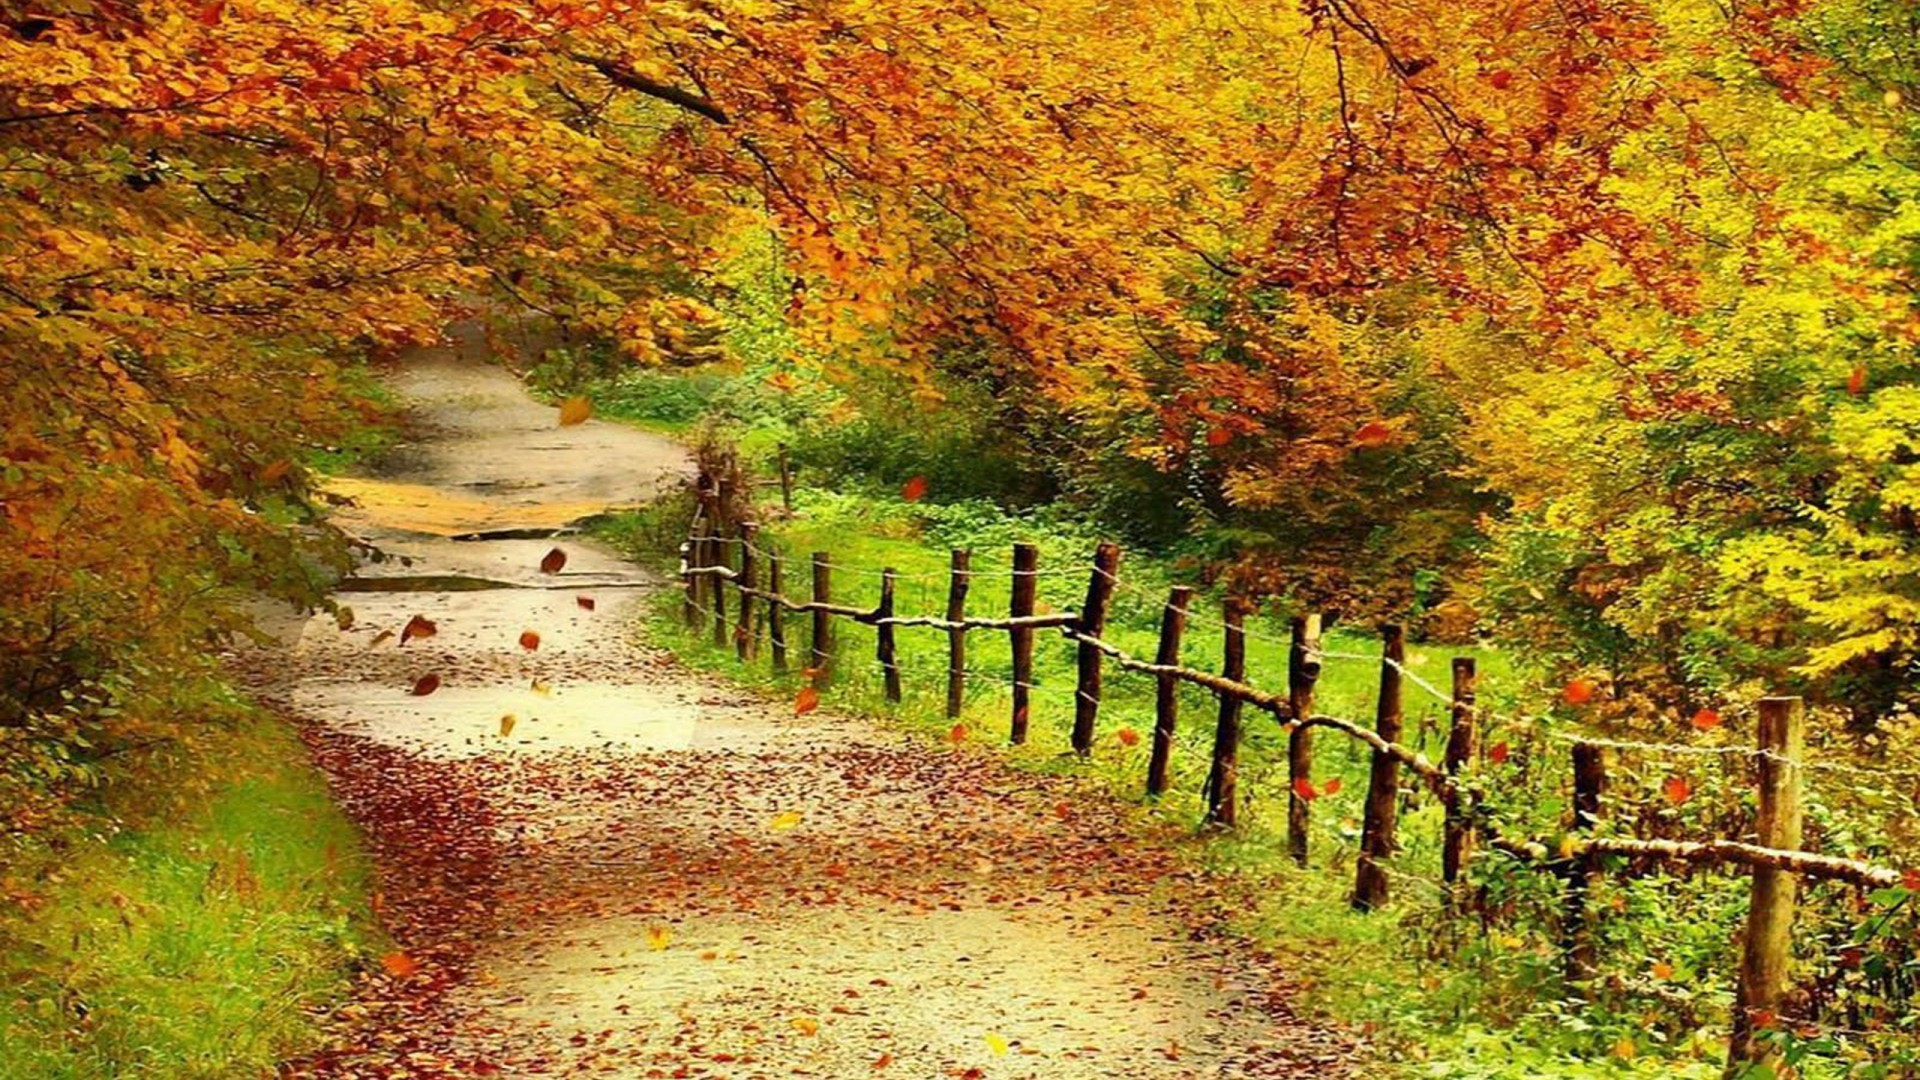 Fall Scenery Wallpaper (57+ images)